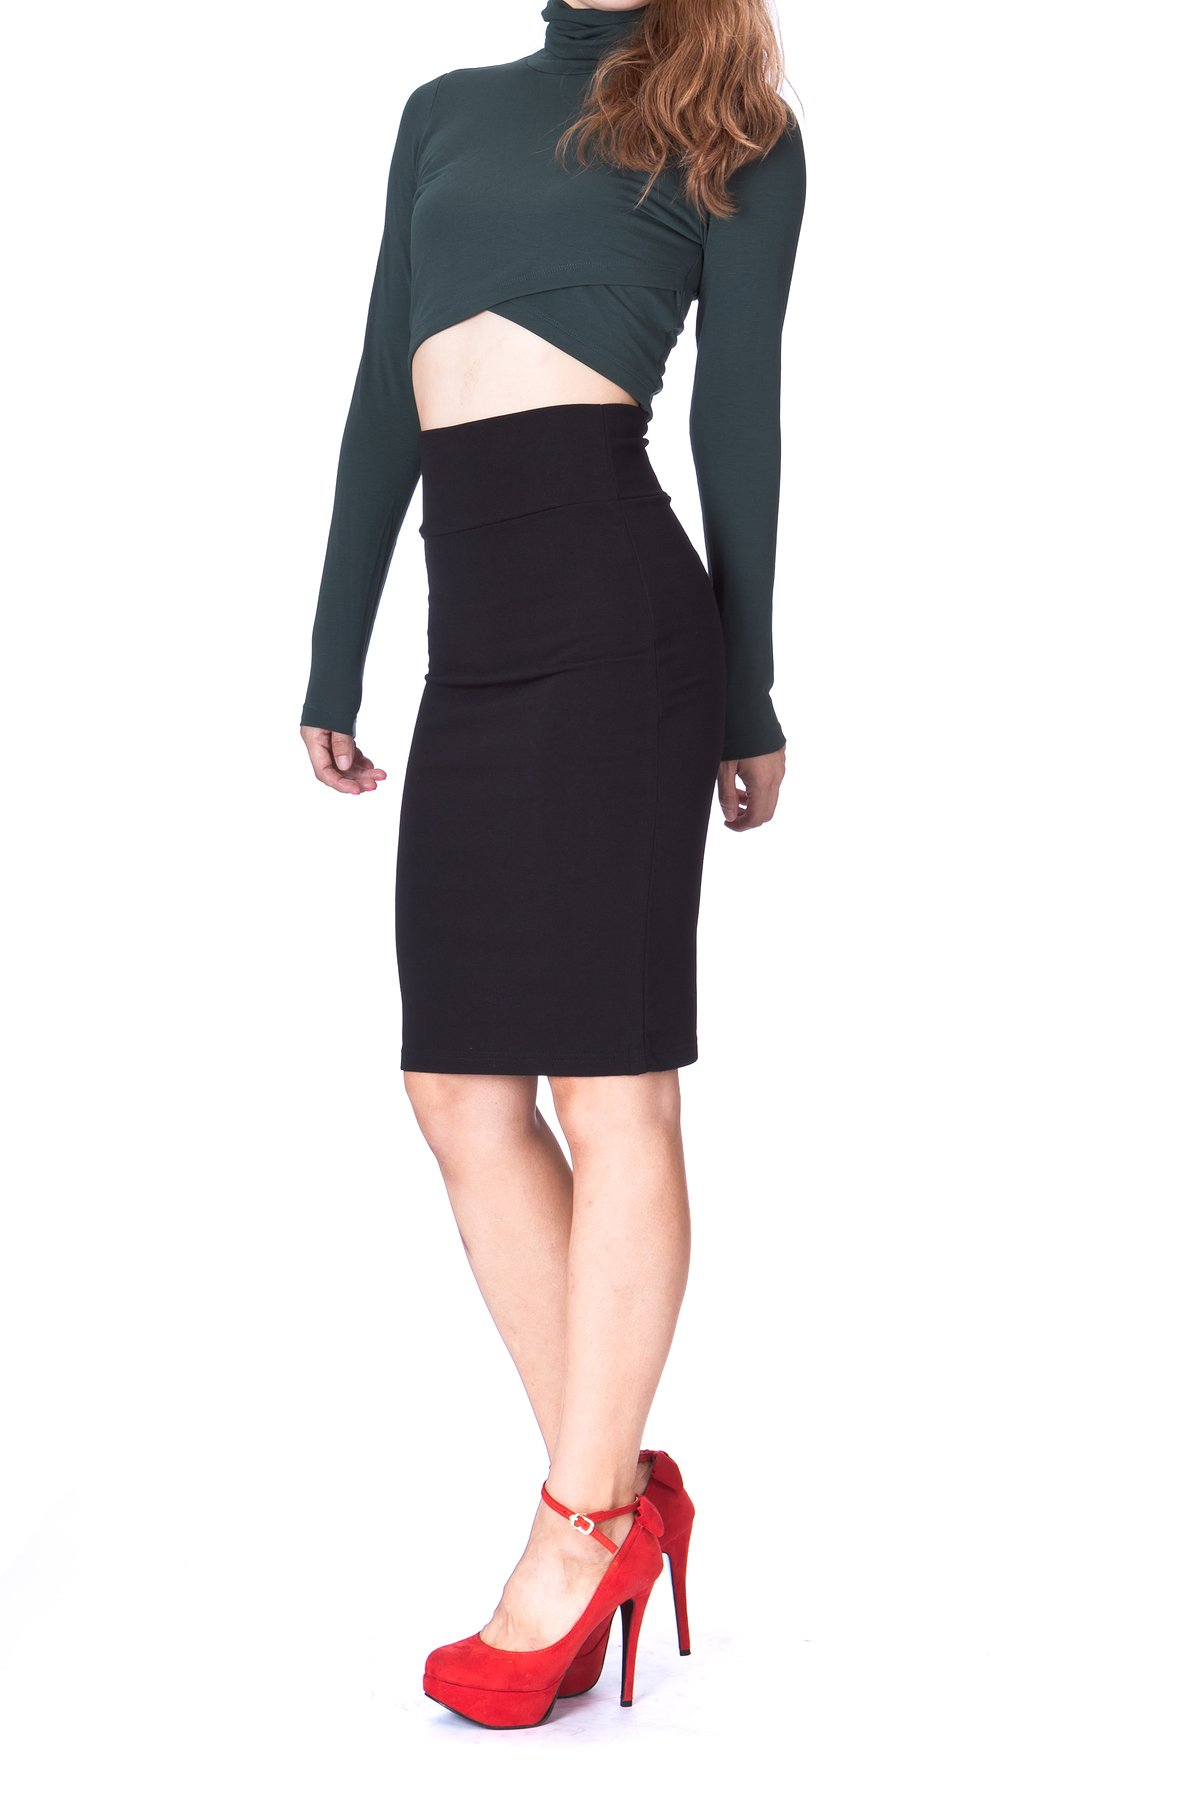 Every Occasion Stretch Pull on Wide High Waist Bodycon Pencil Knee Length Midi Skirt Black 3